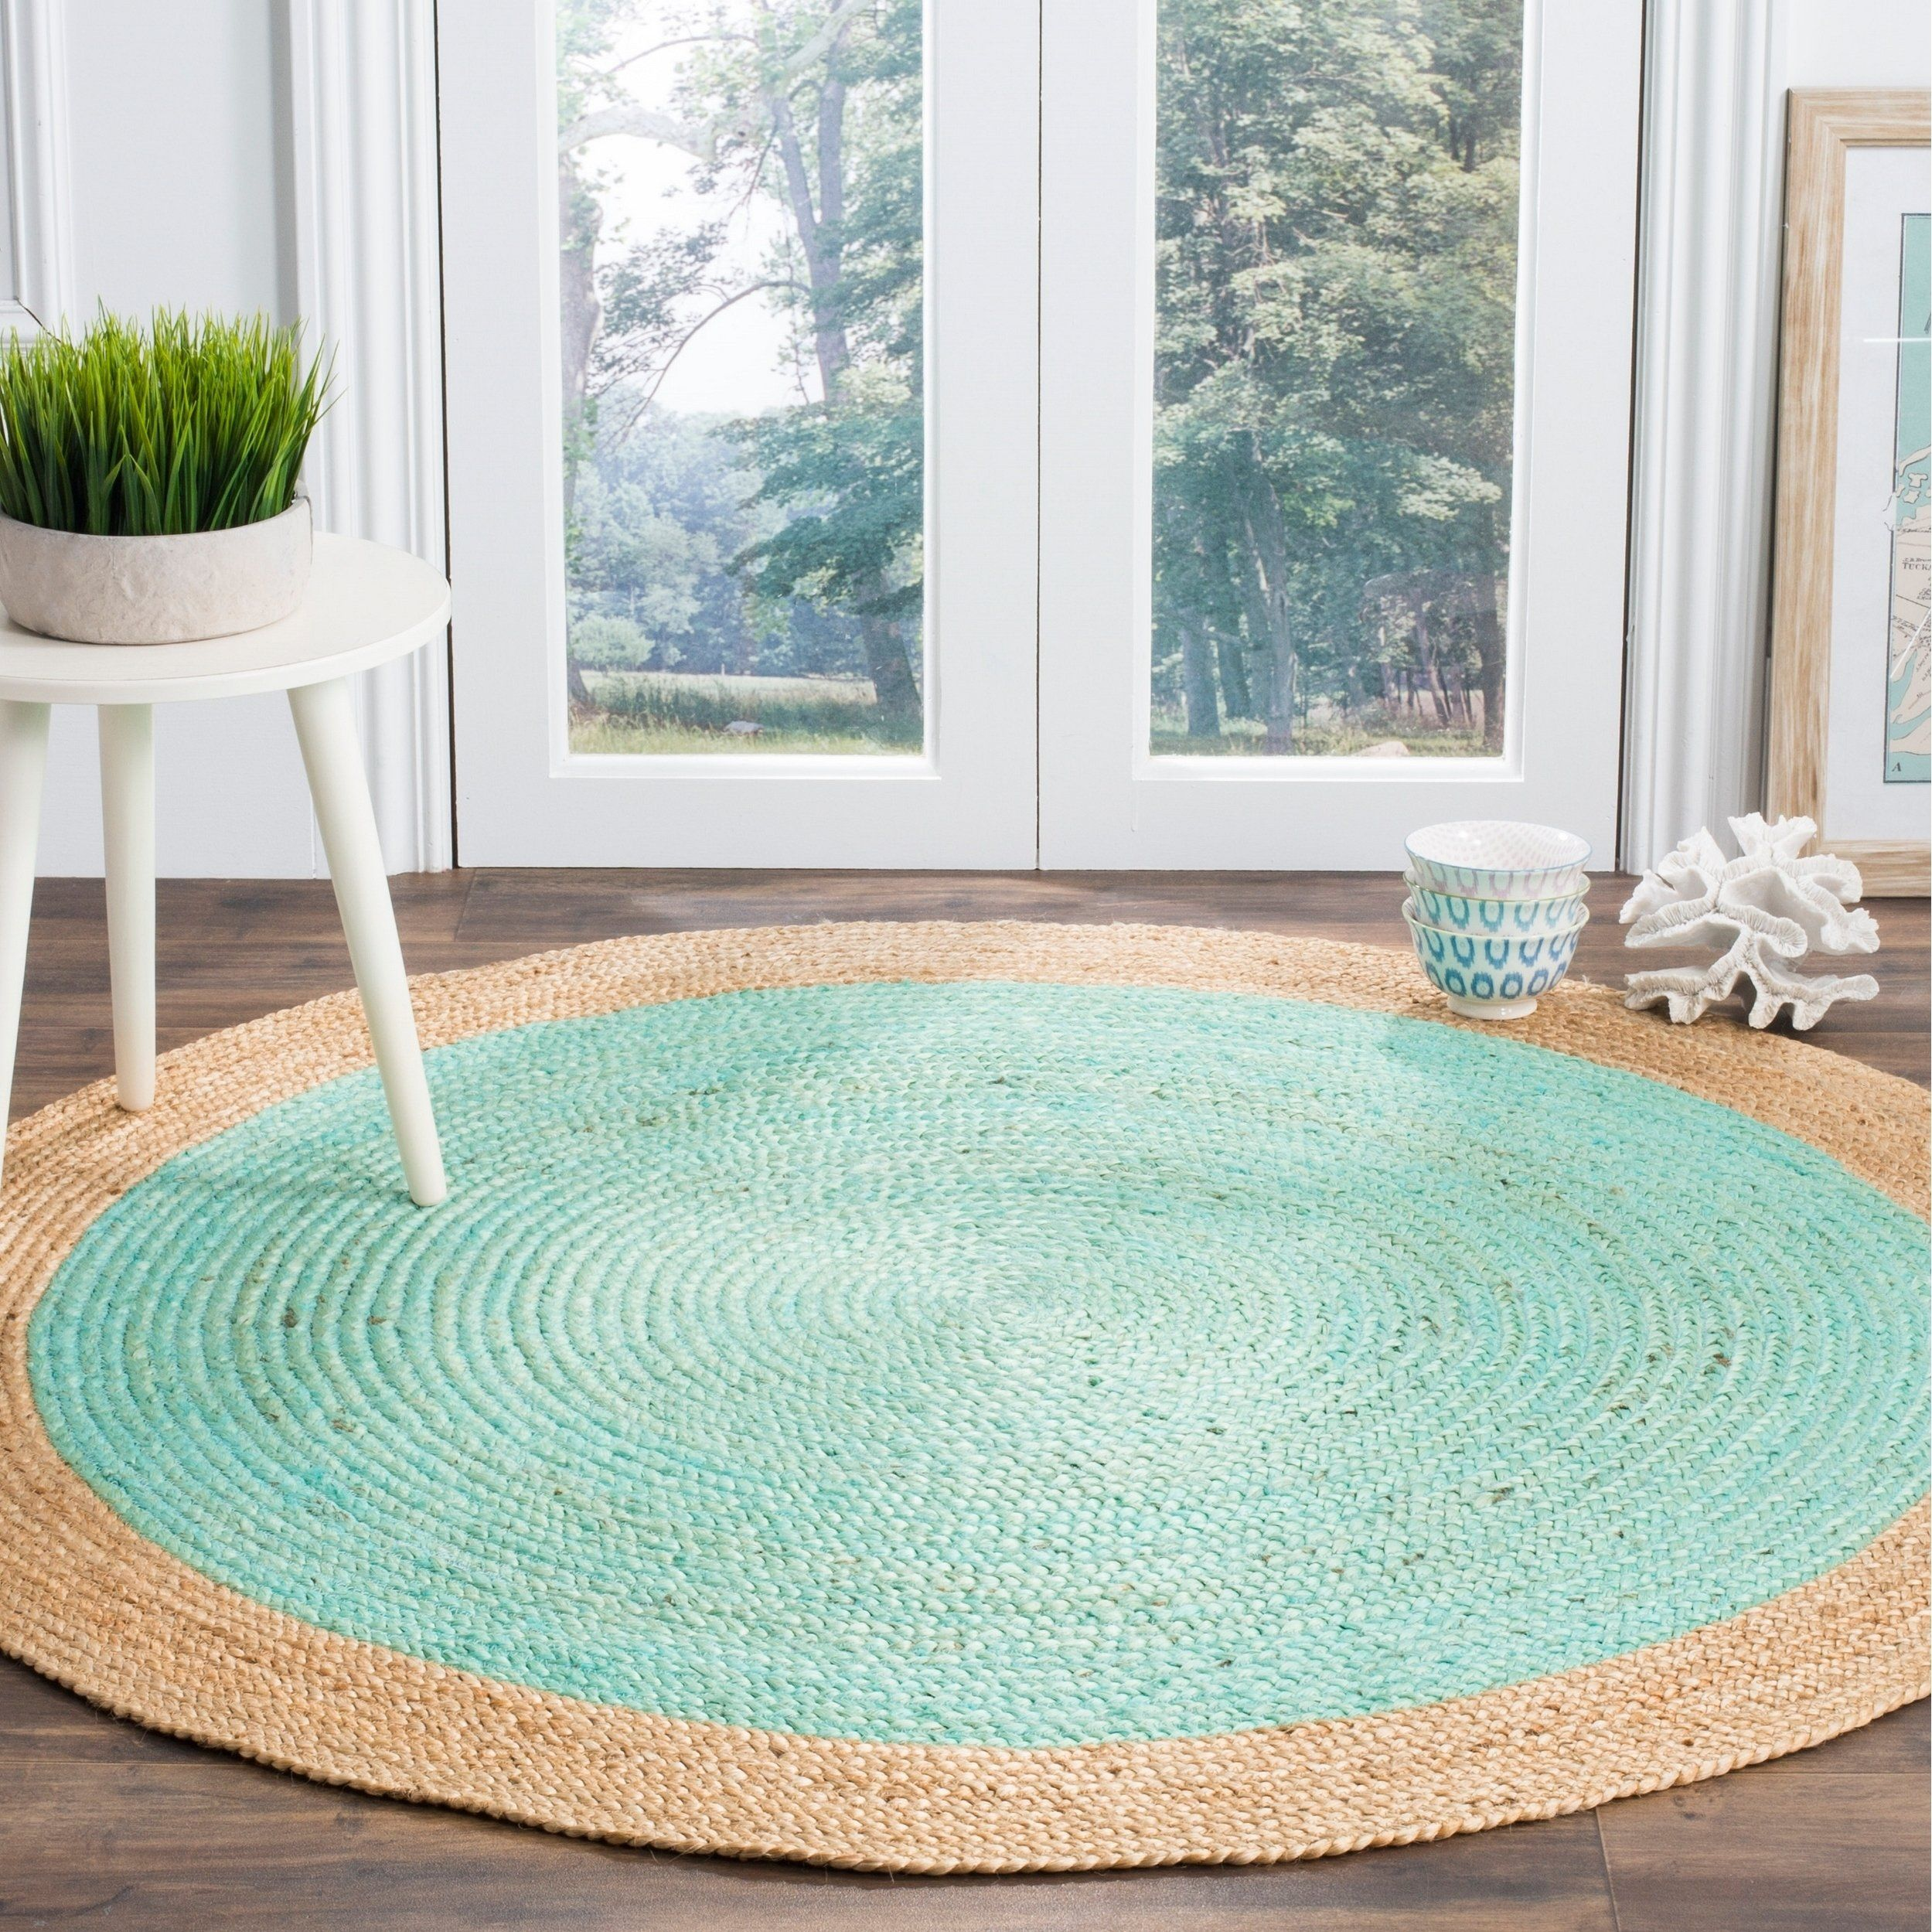 Safavieh Handmade Natural Fiber Contemporary Geometric Aqua